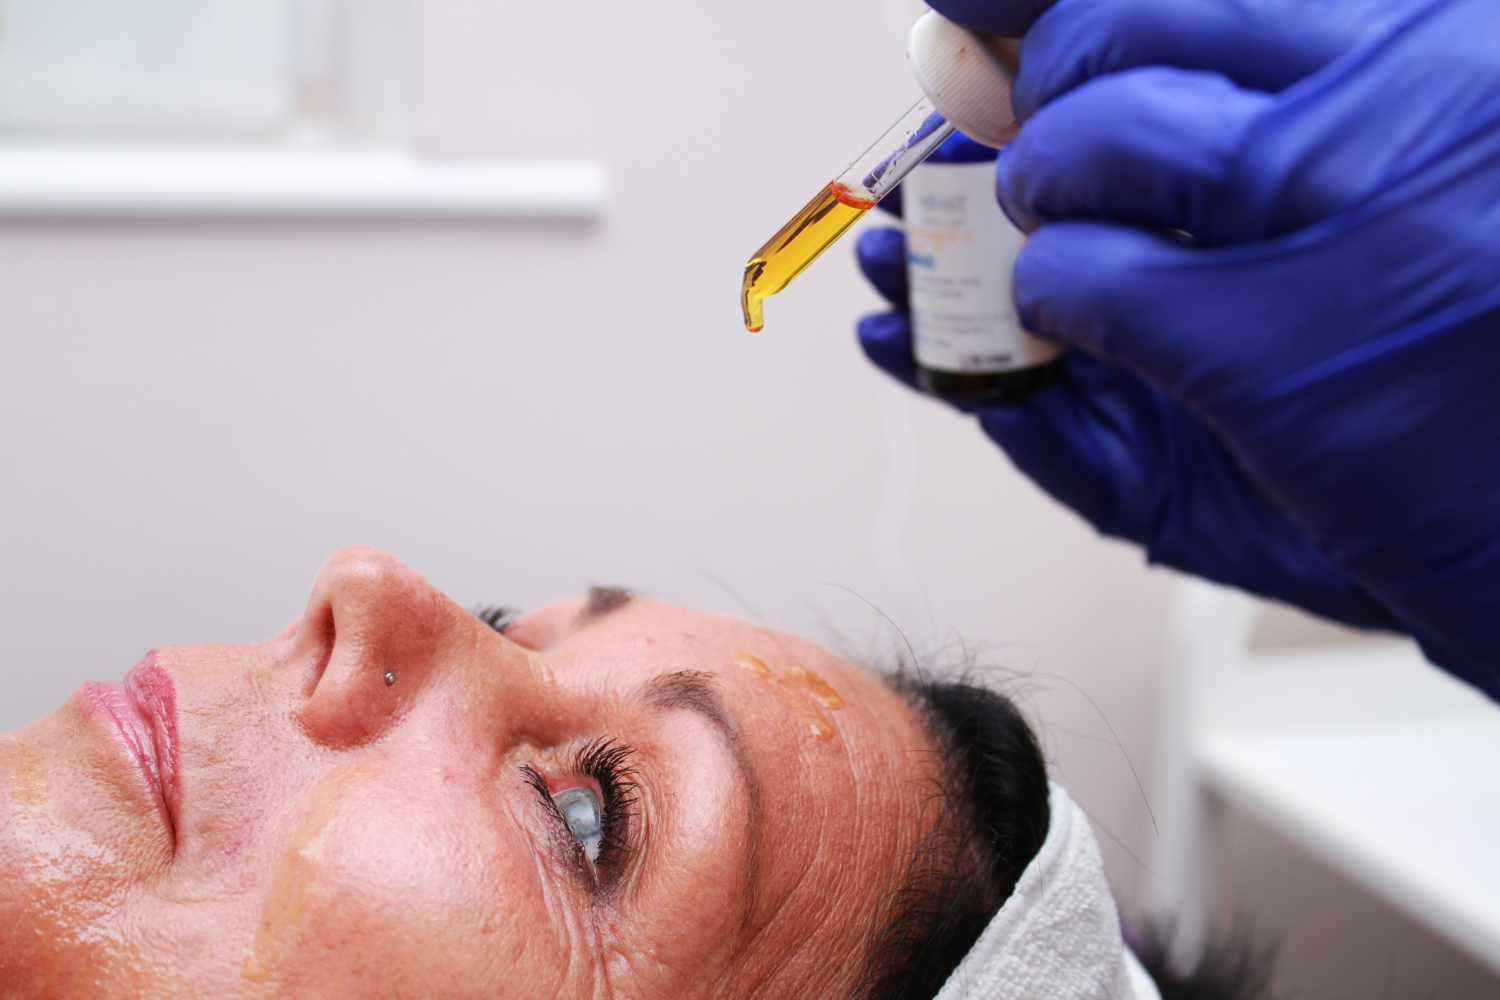 Chemical Peel Application